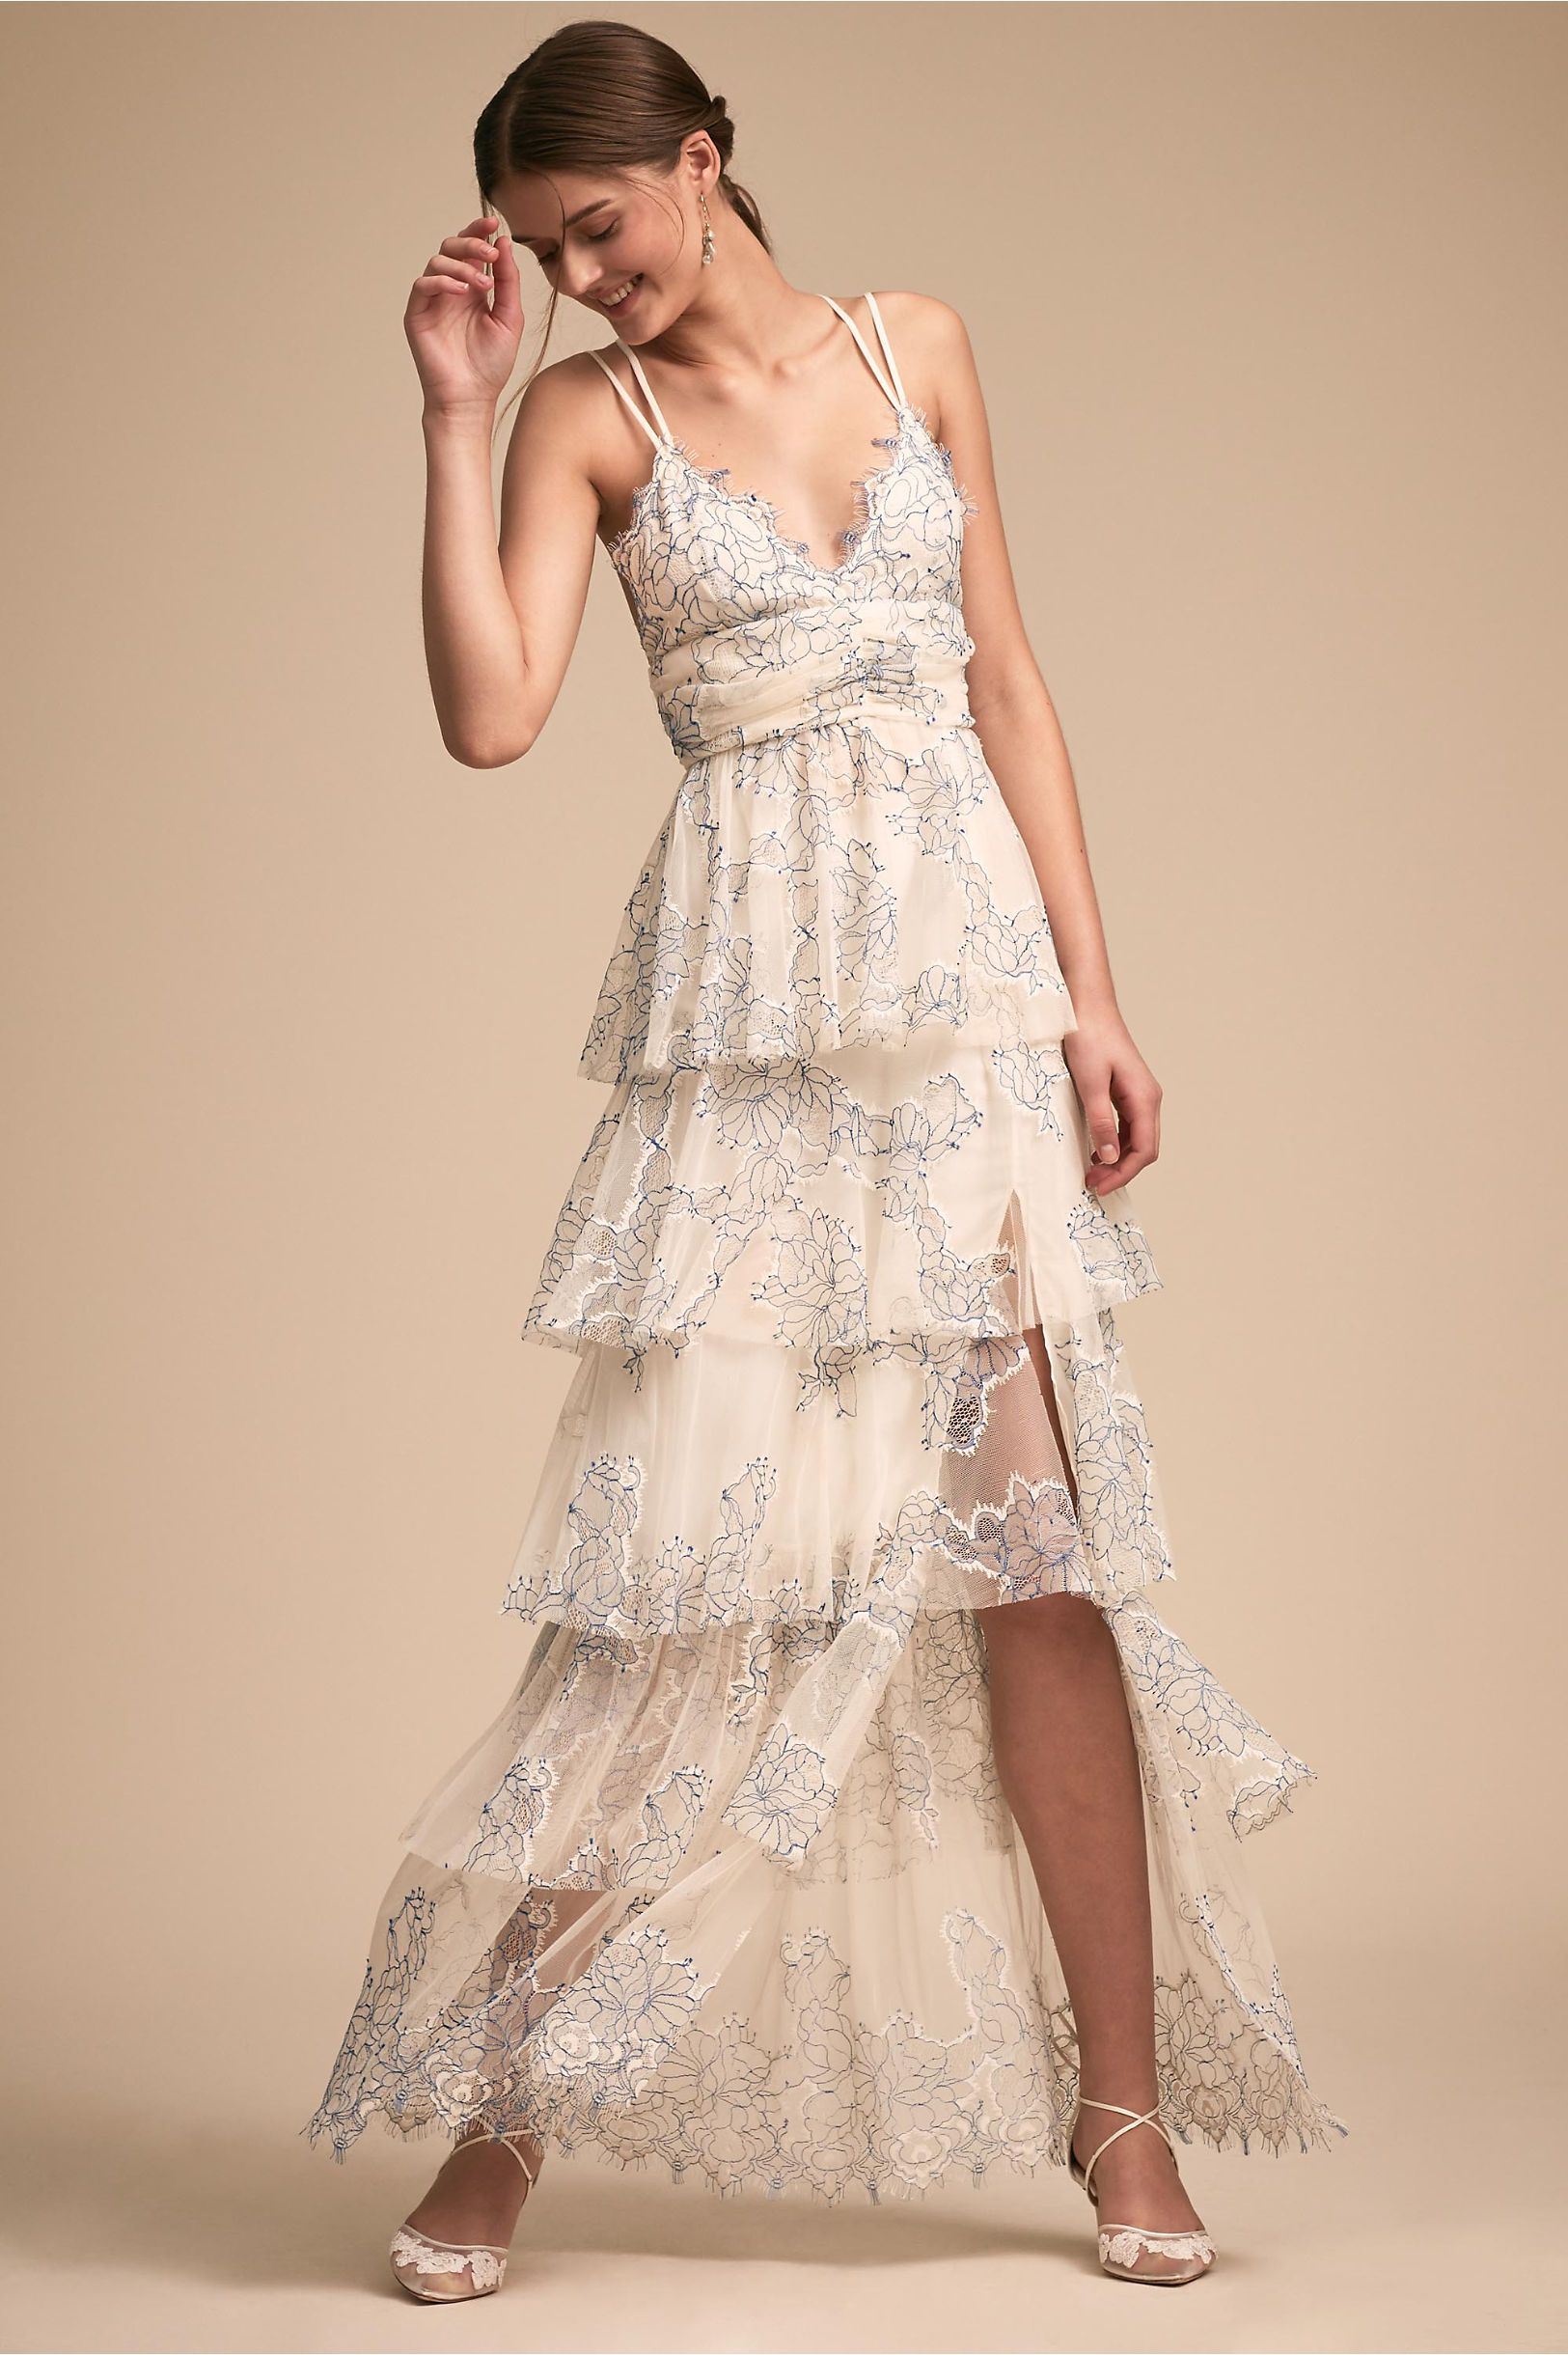 d40067910f9 BHLDN s Alice Mccall Love is Love Dress in Blue Motif in 2019 ...